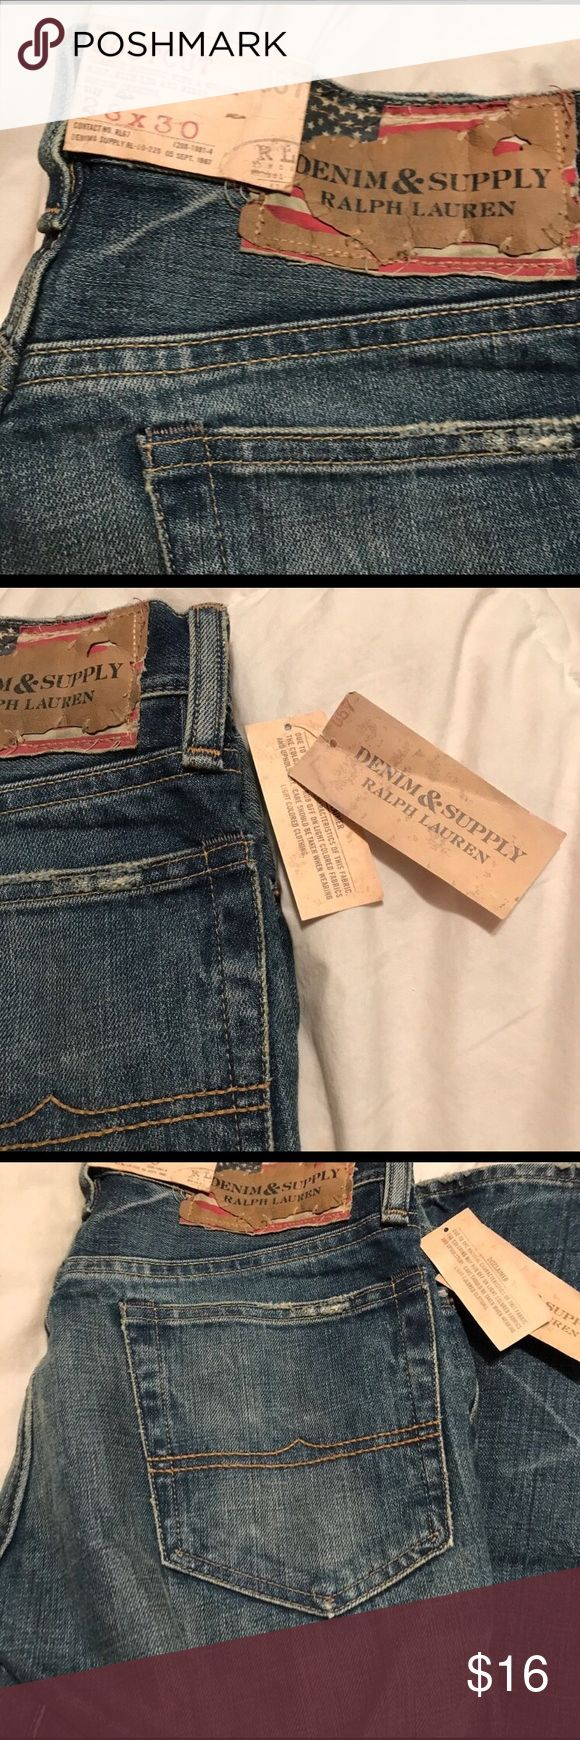 Denim & Supply Ralph Lauren Mens Bootcut Jeans 28 New Ralph Lauren Men's Bootcut Jeans  Size: 28x30  Wash/style: Medium wash, distressed, classic bootcut with medium rise, slim leg and wider bottom opening  Condition: New with tags (tags are included but were removed from jeans when trying them on, never been worn) - bought these NWT from another Posher for my fiancé but they were a little too tight around his waist. Denim & Supply Ralph Lauren Jeans Bootcut #mensjeansbootcut